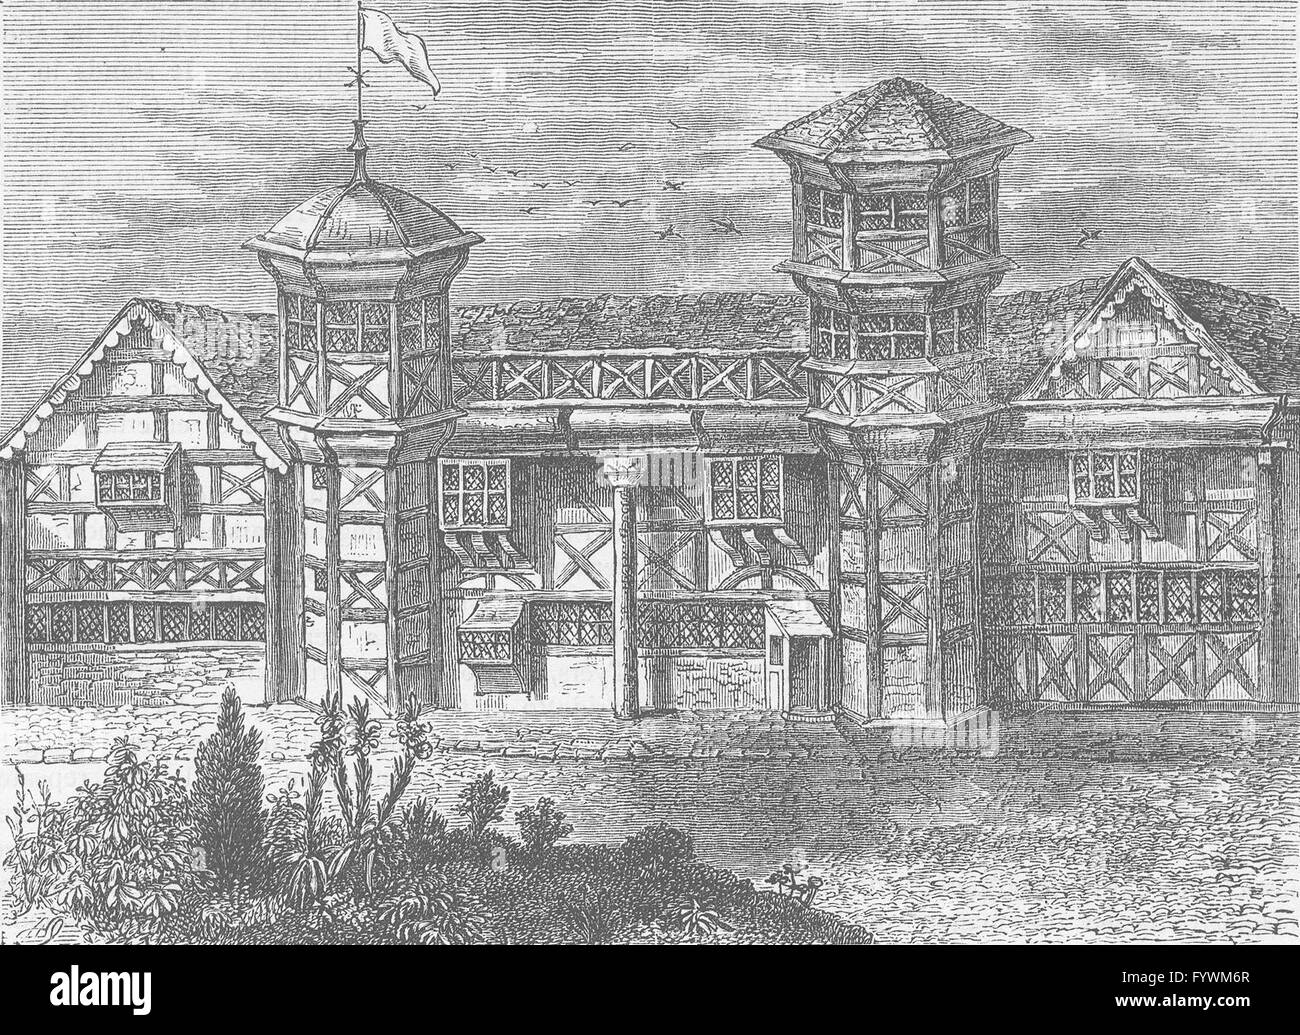 VAUXHALL: The old manor-House at Vauxhall, about 1800. London, old print c1880 - Stock Image